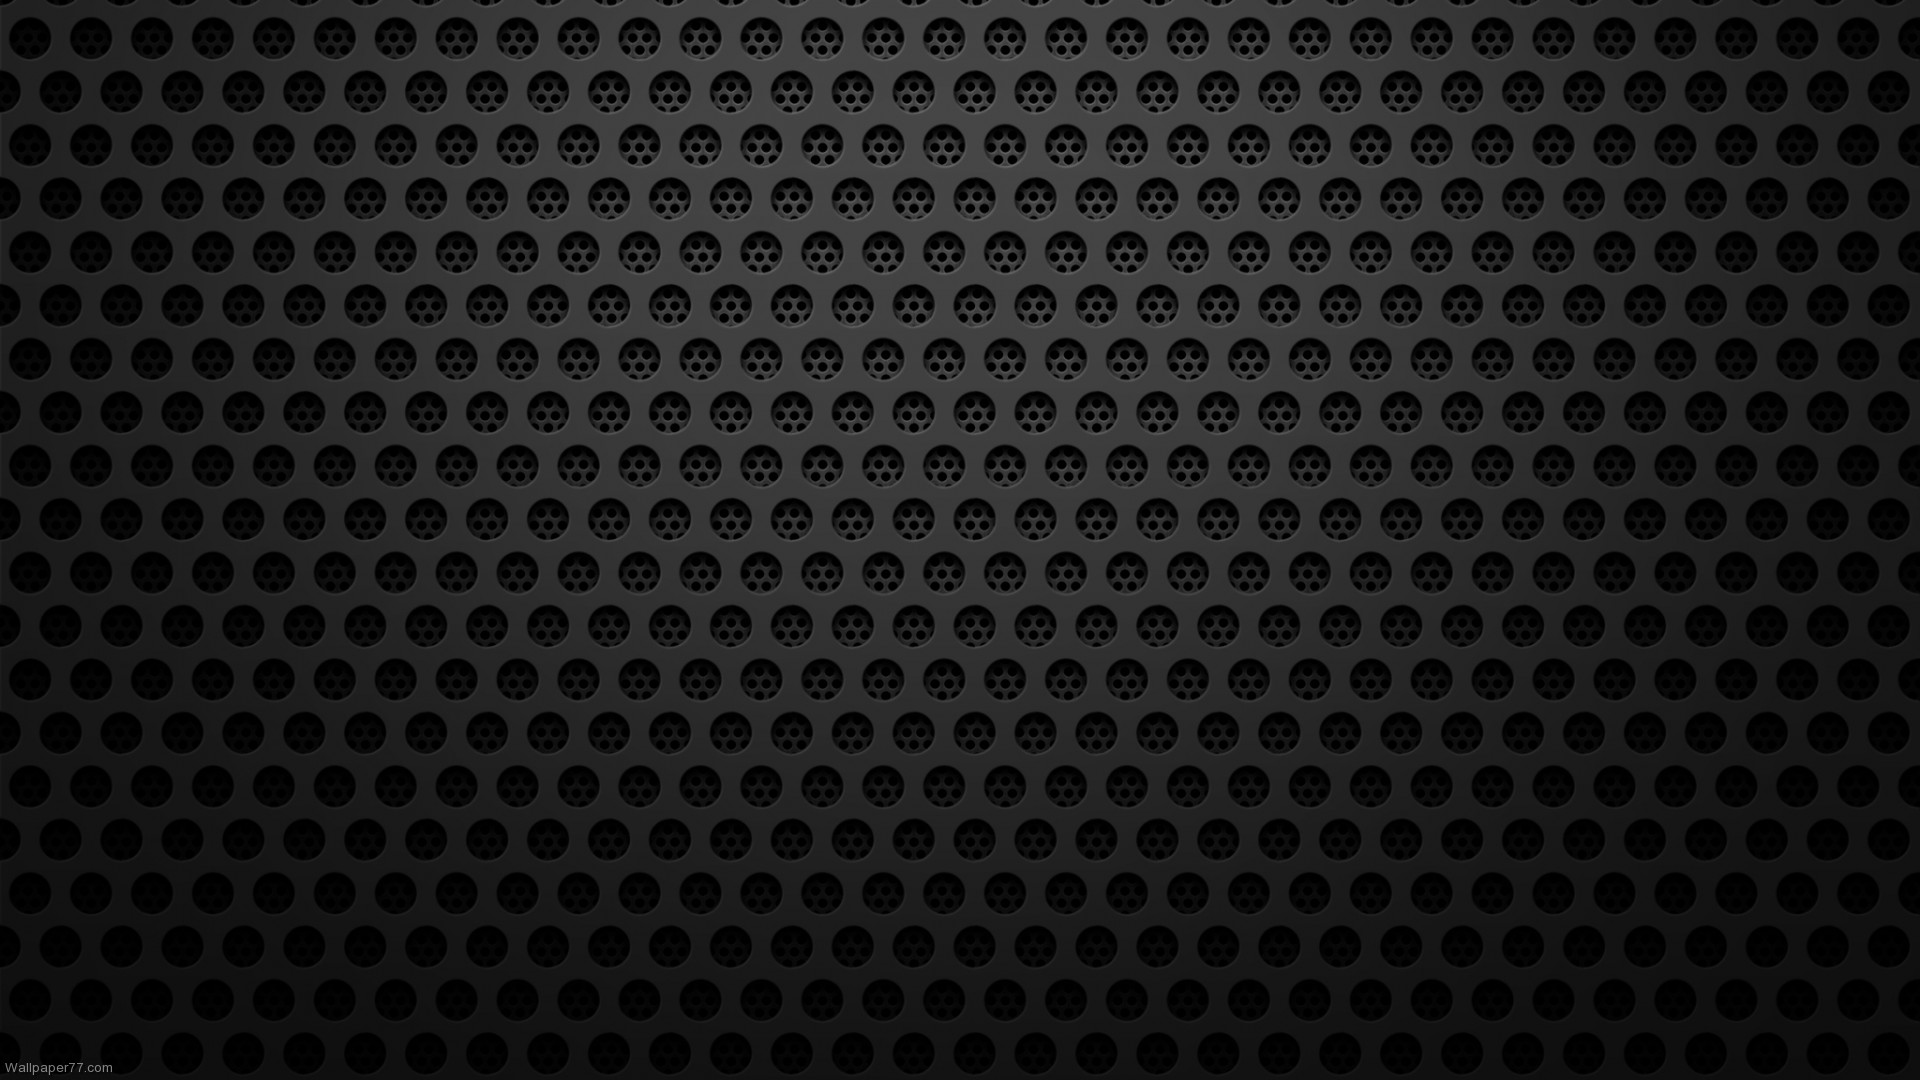 patterns iPad 3 wallpaper iPad wallpaper pattern wallpapers retina 1920x1080